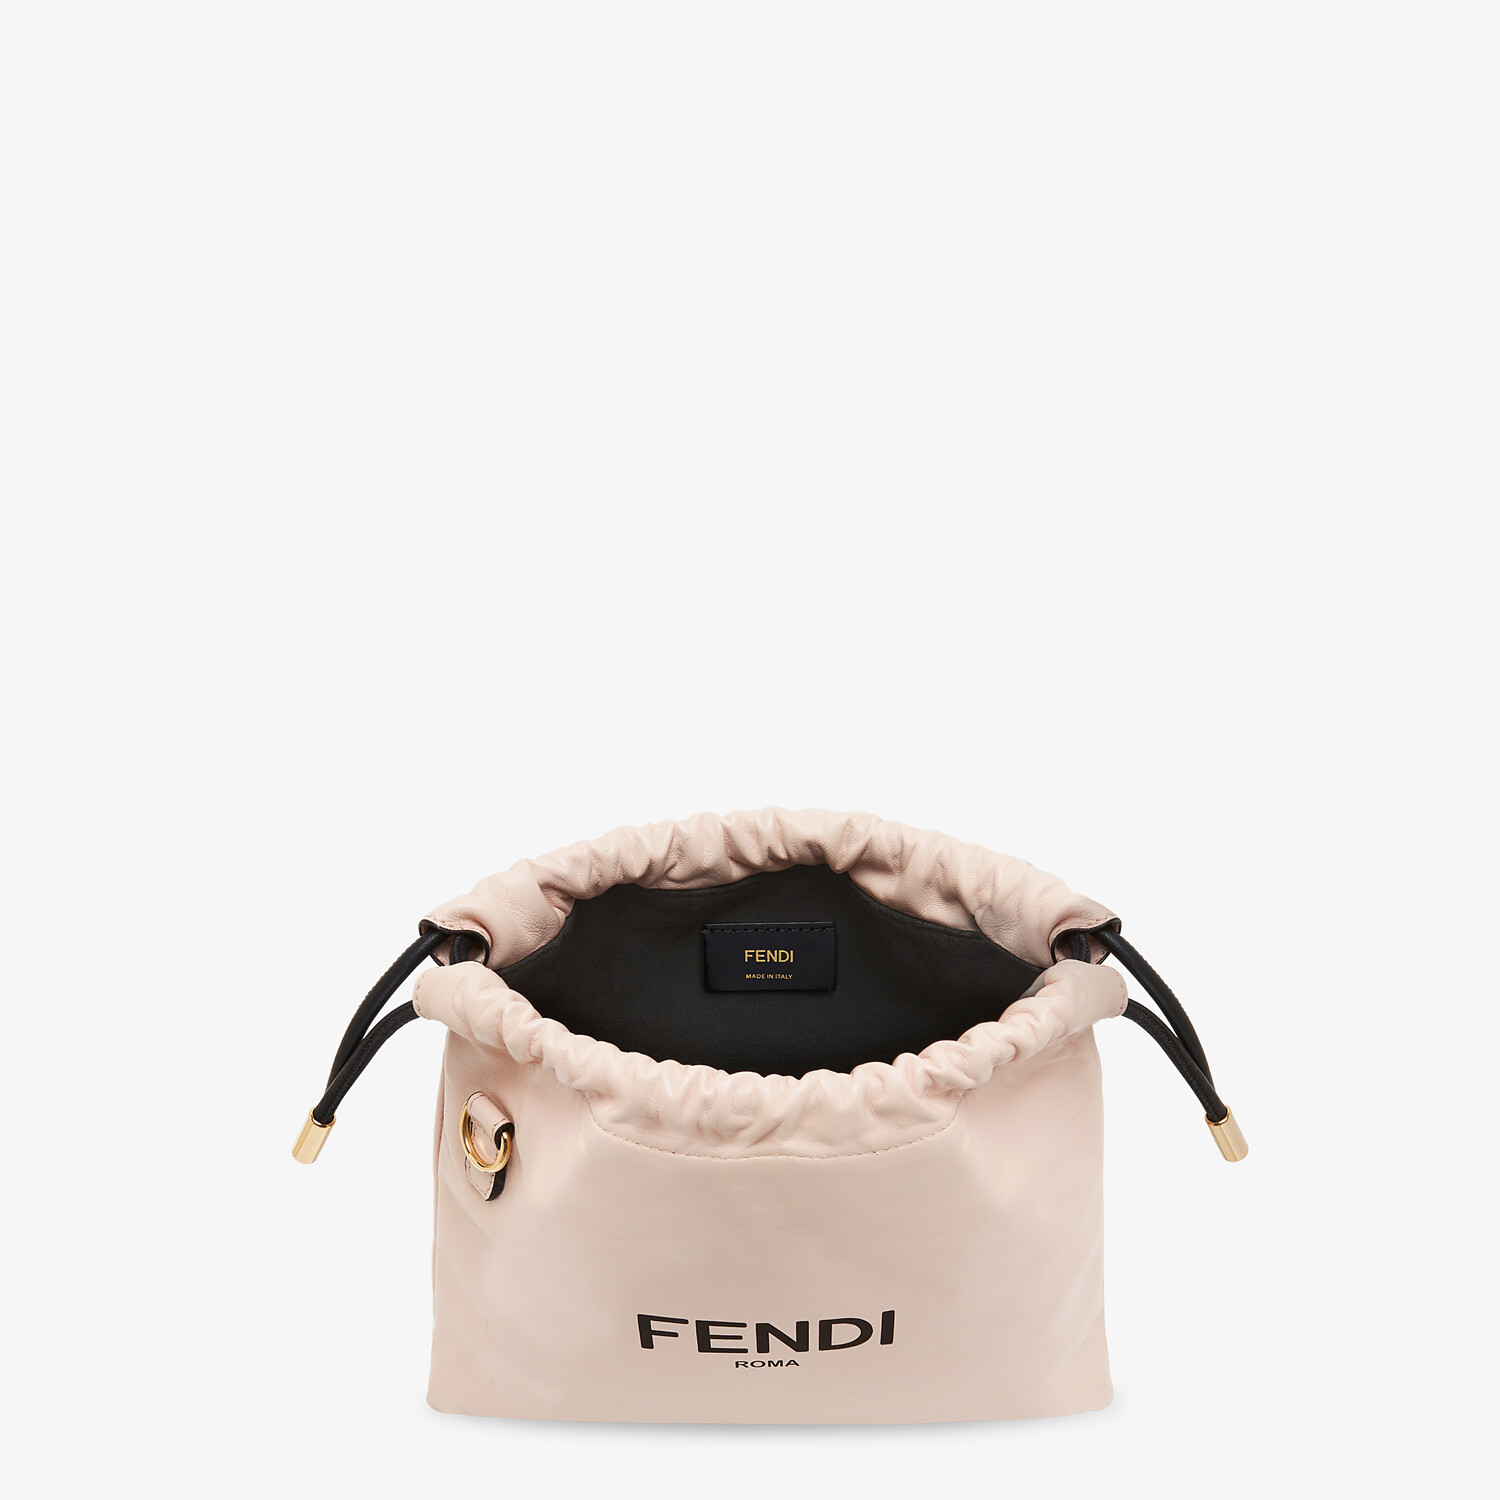 FENDI FENDI PACK SMALL POUCH - Pink nappa leather bag - view 5 detail